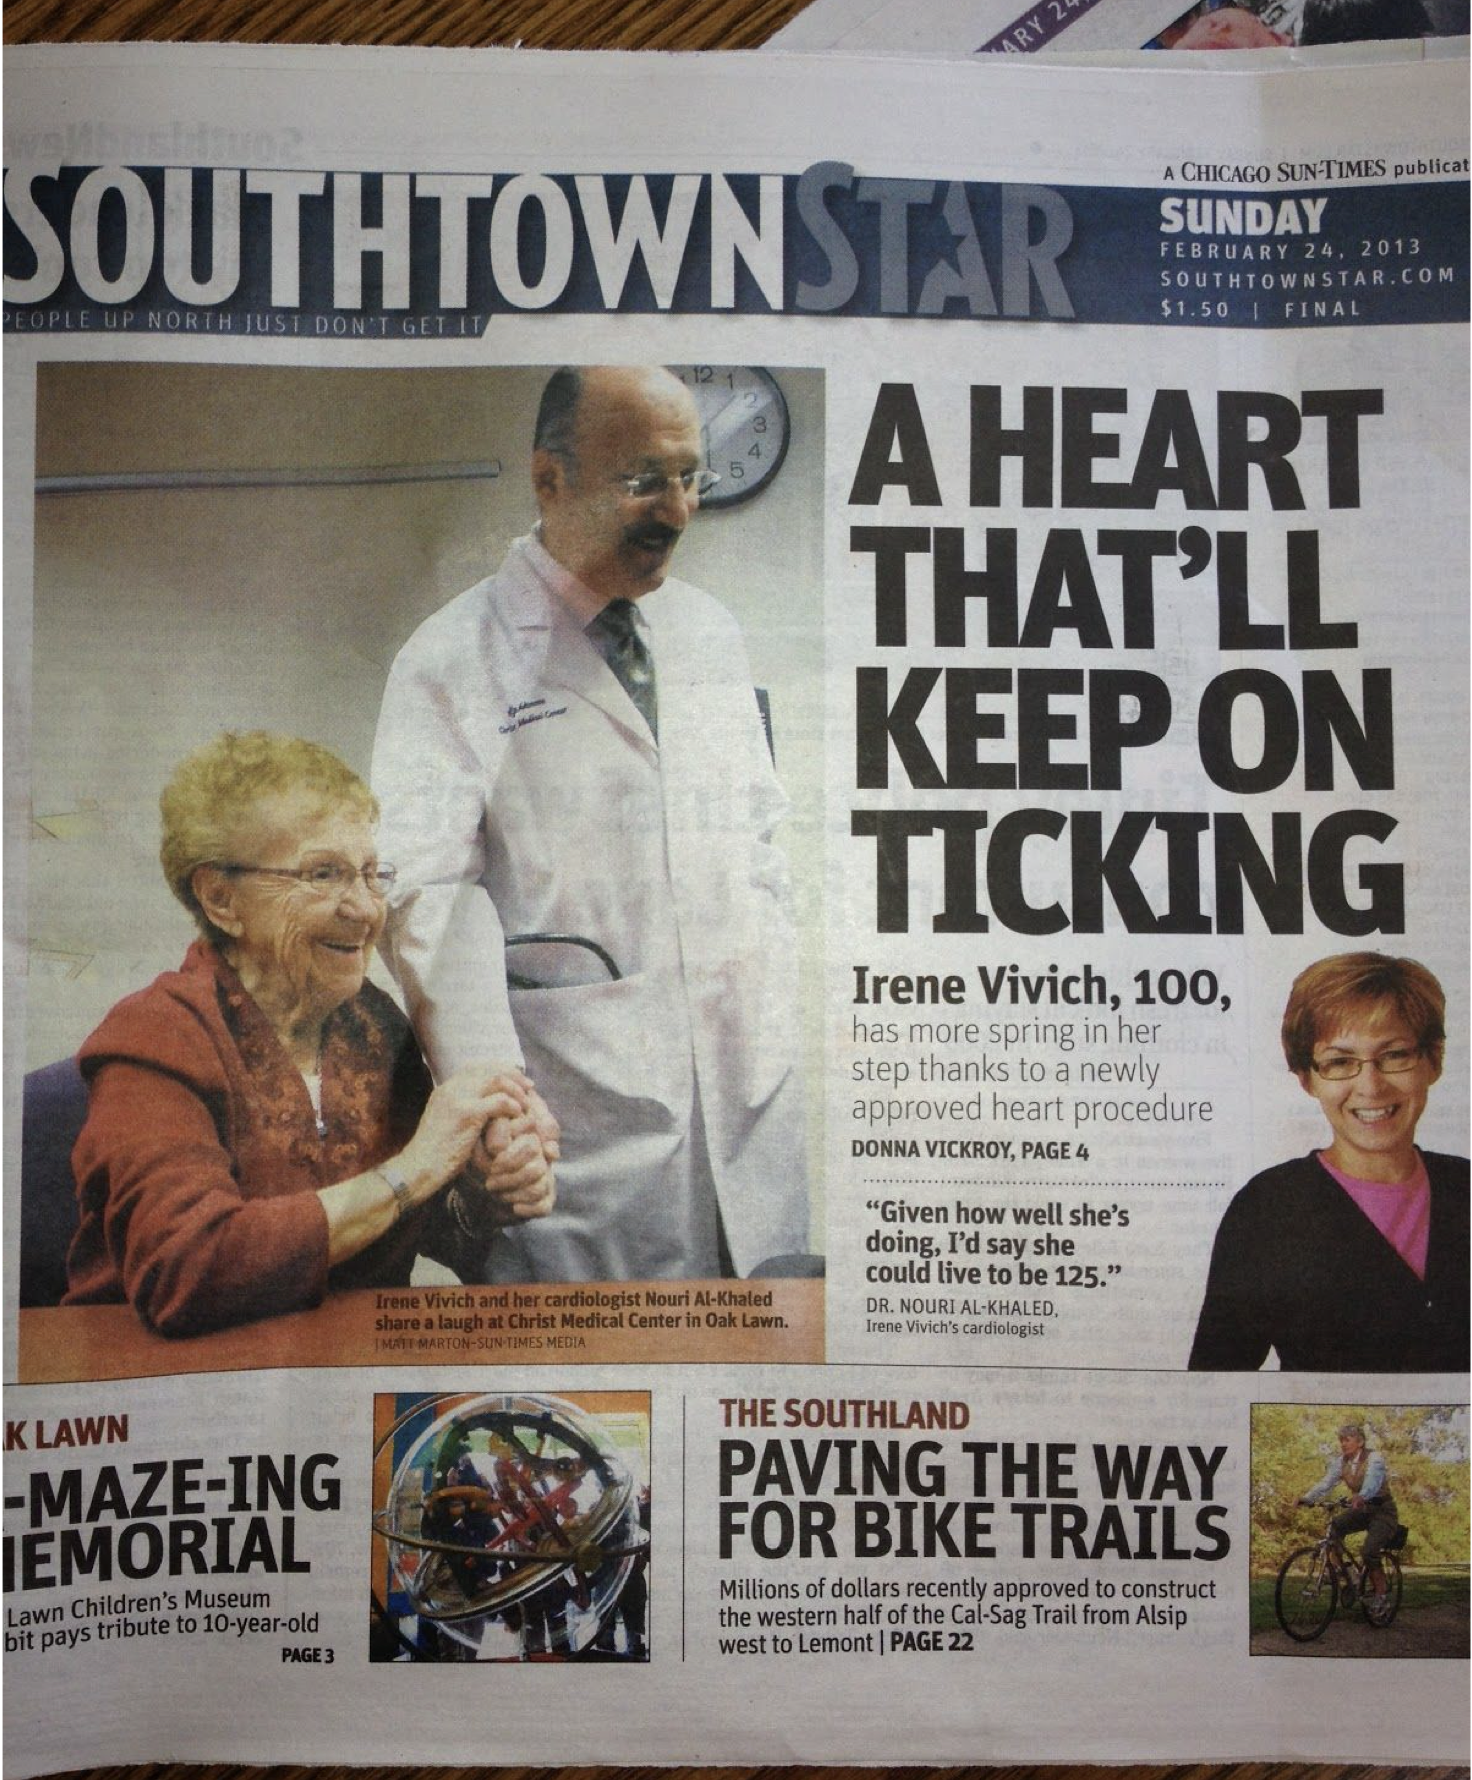 Dr. Al Khaled treated Irene, 100 years old, with an aortic valve delivered through an angiogram (TAV